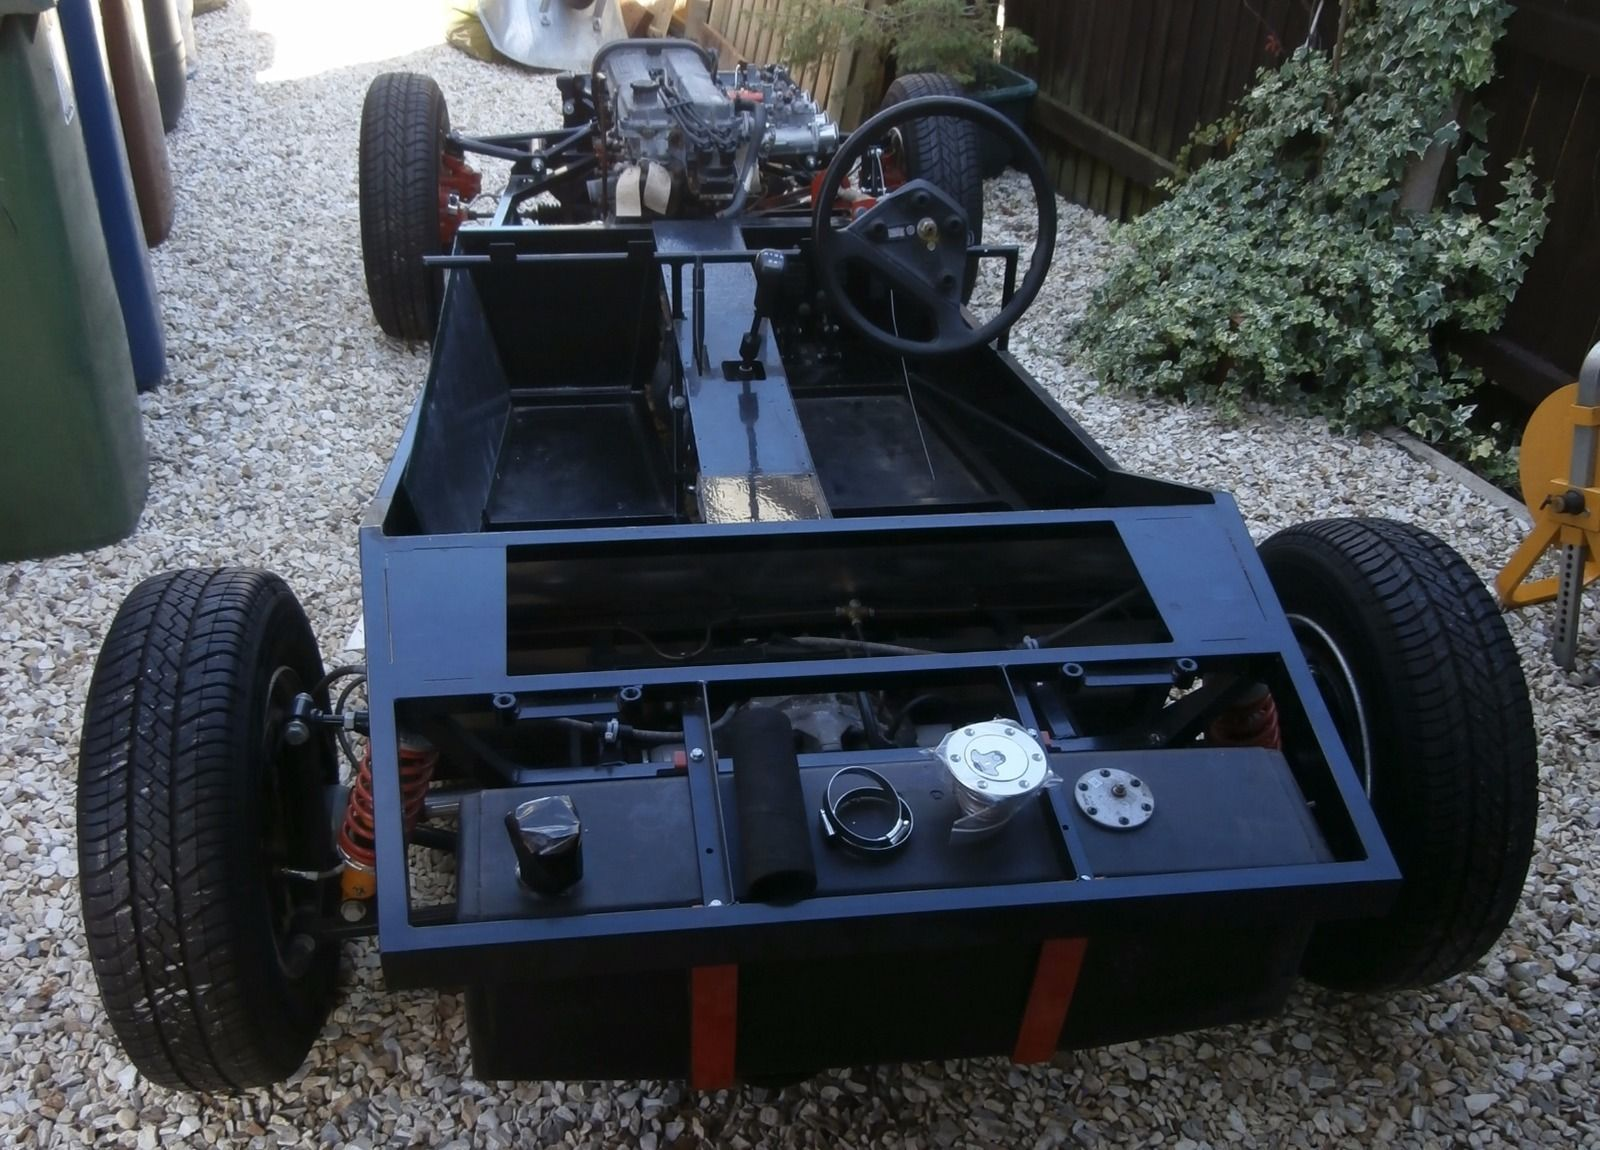 Fisher Fury Chassis - Unfinished Kit Car Project | Kit cars and Cars